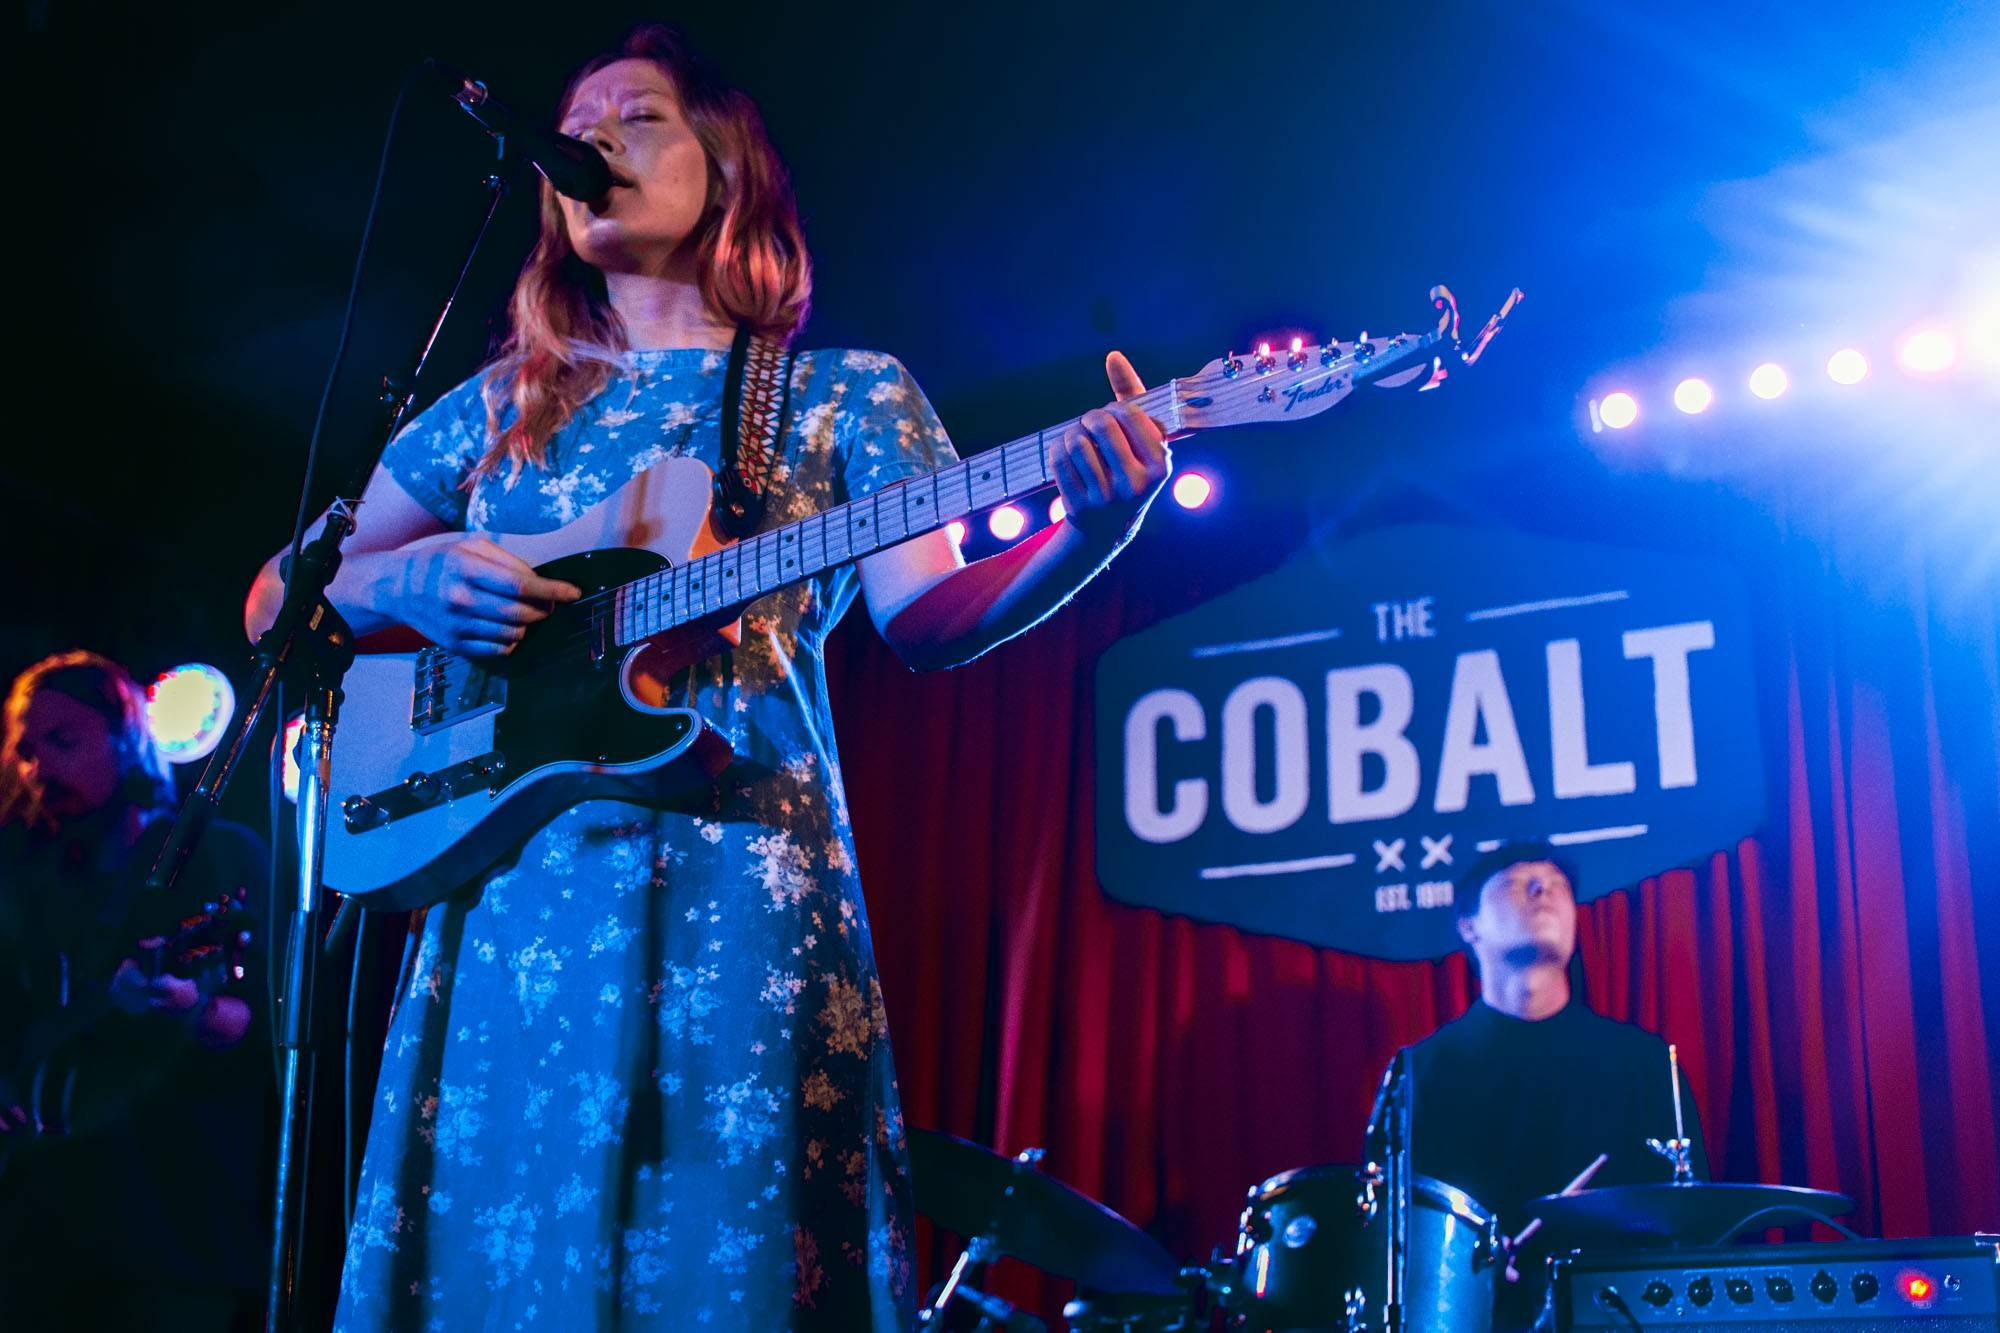 Julia Jacklin at the Cobalt, Vancouver, Apr. 20 2016. Jessica Vandergulik photo.